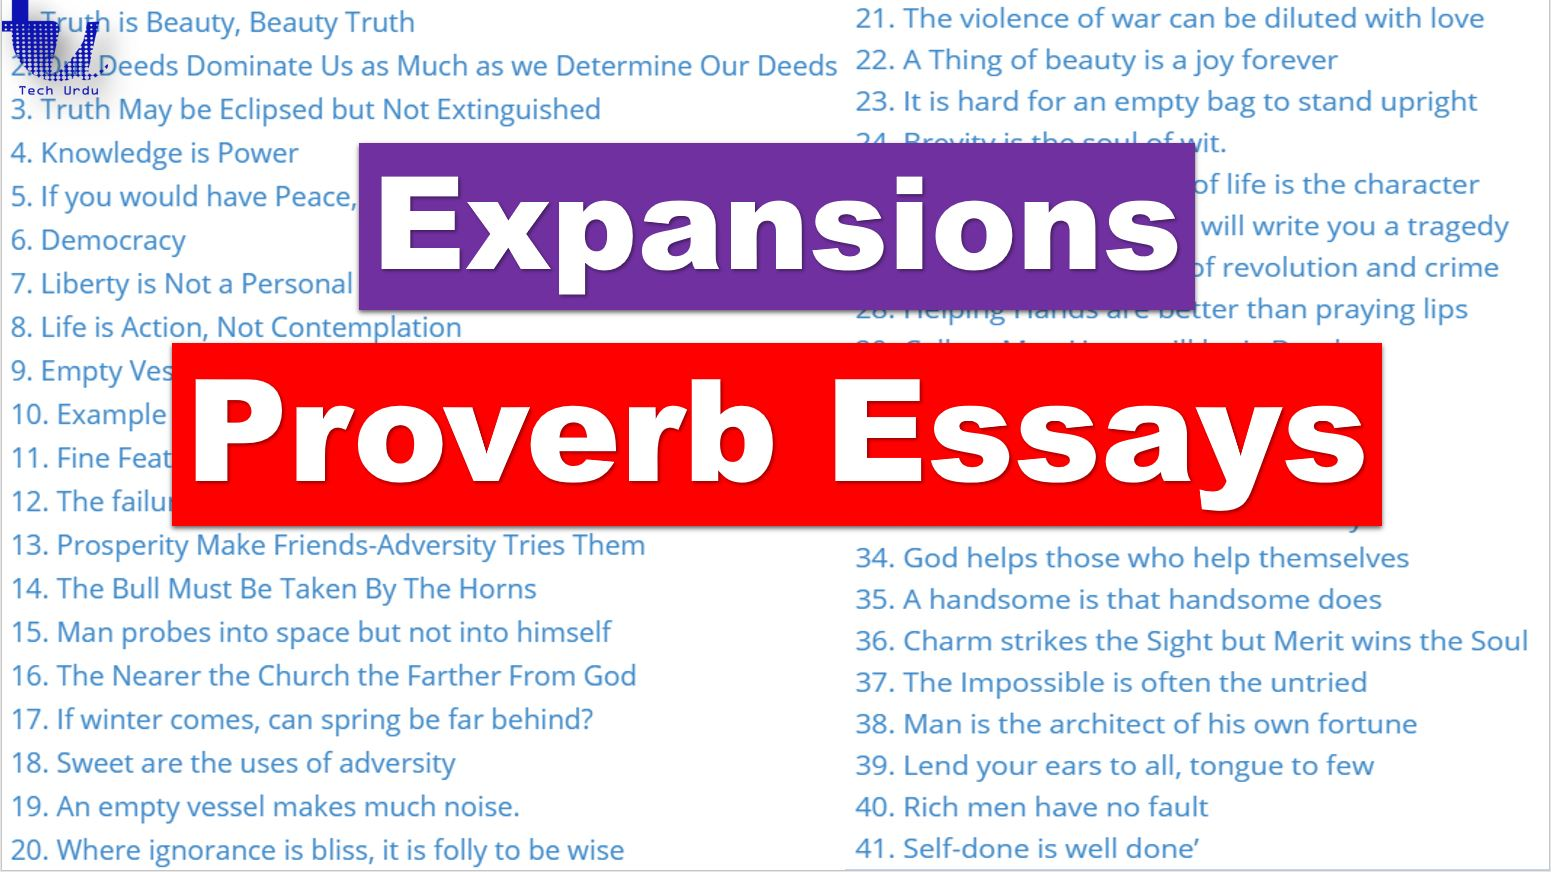 Proverbial essays